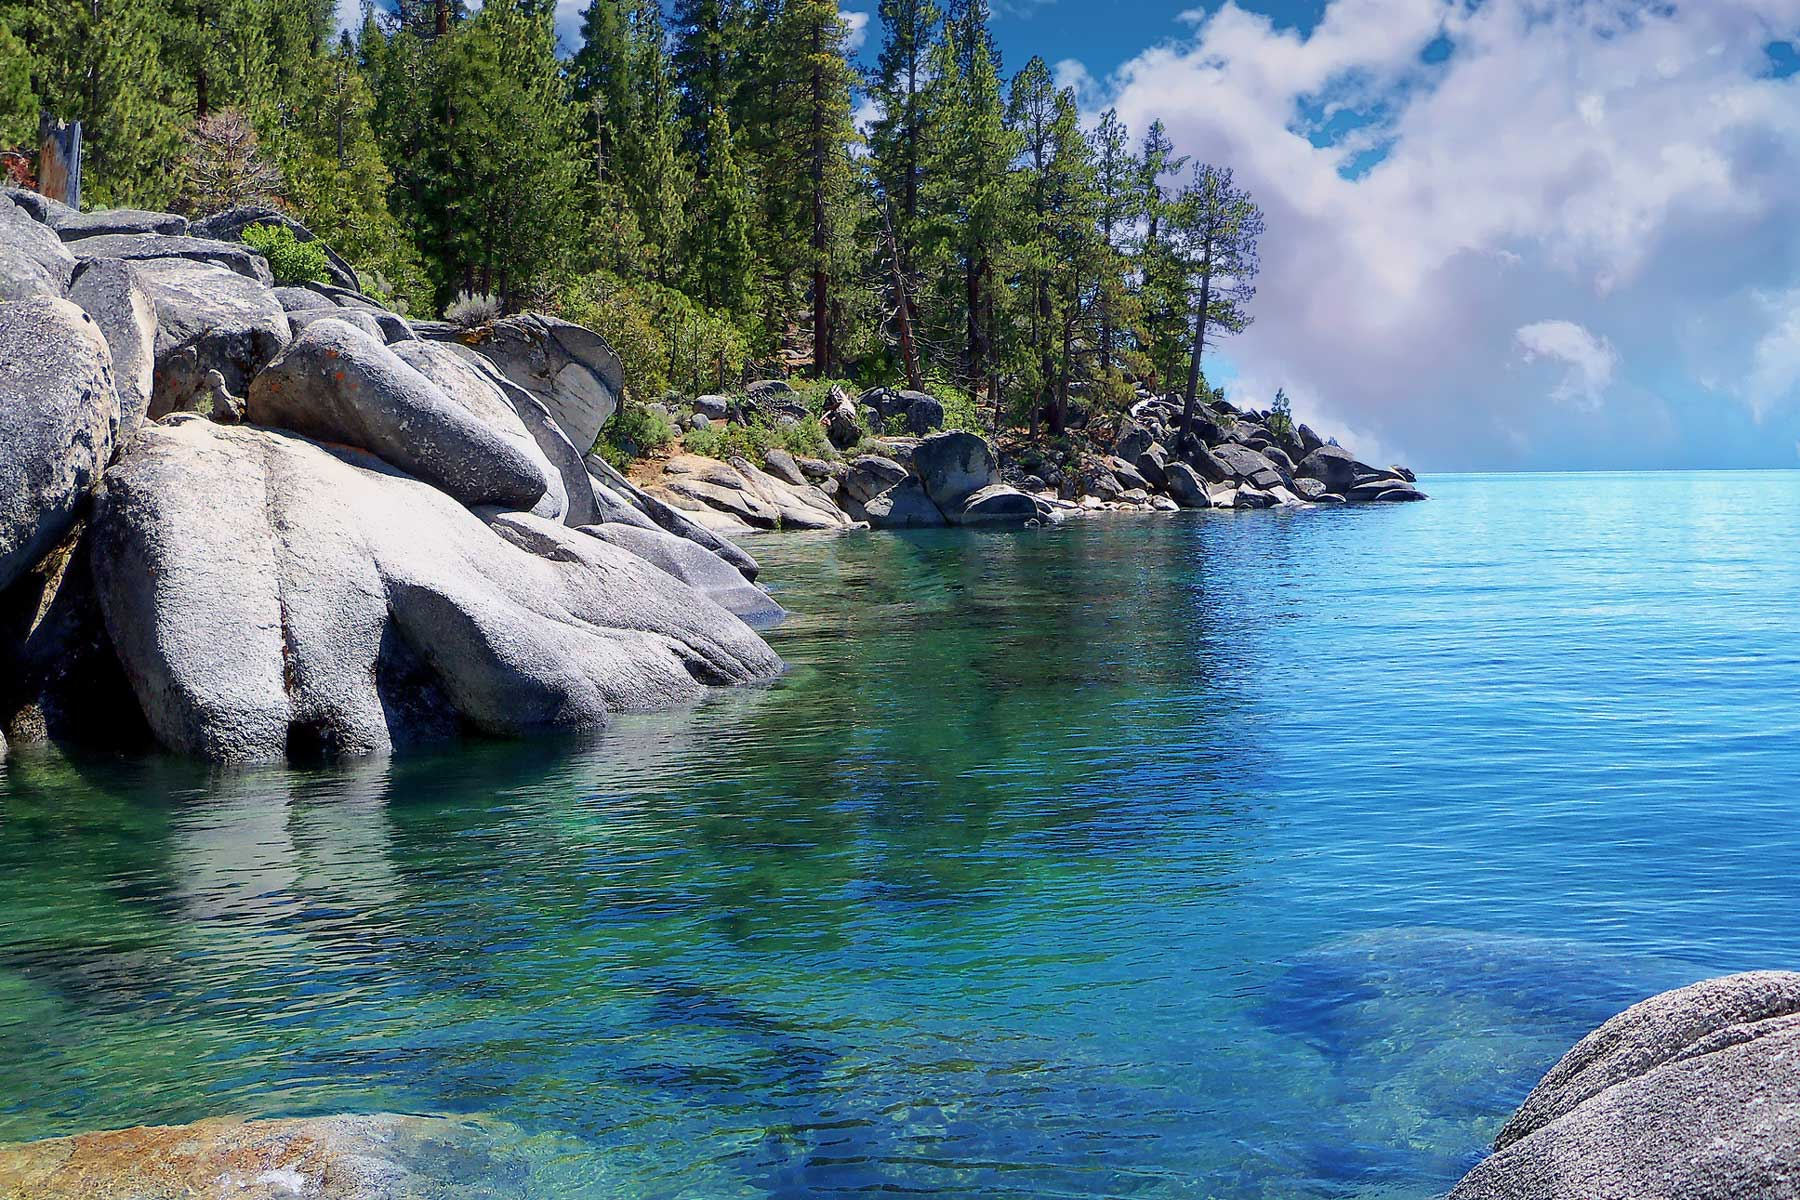 Lake Tahoe's crystal blue water